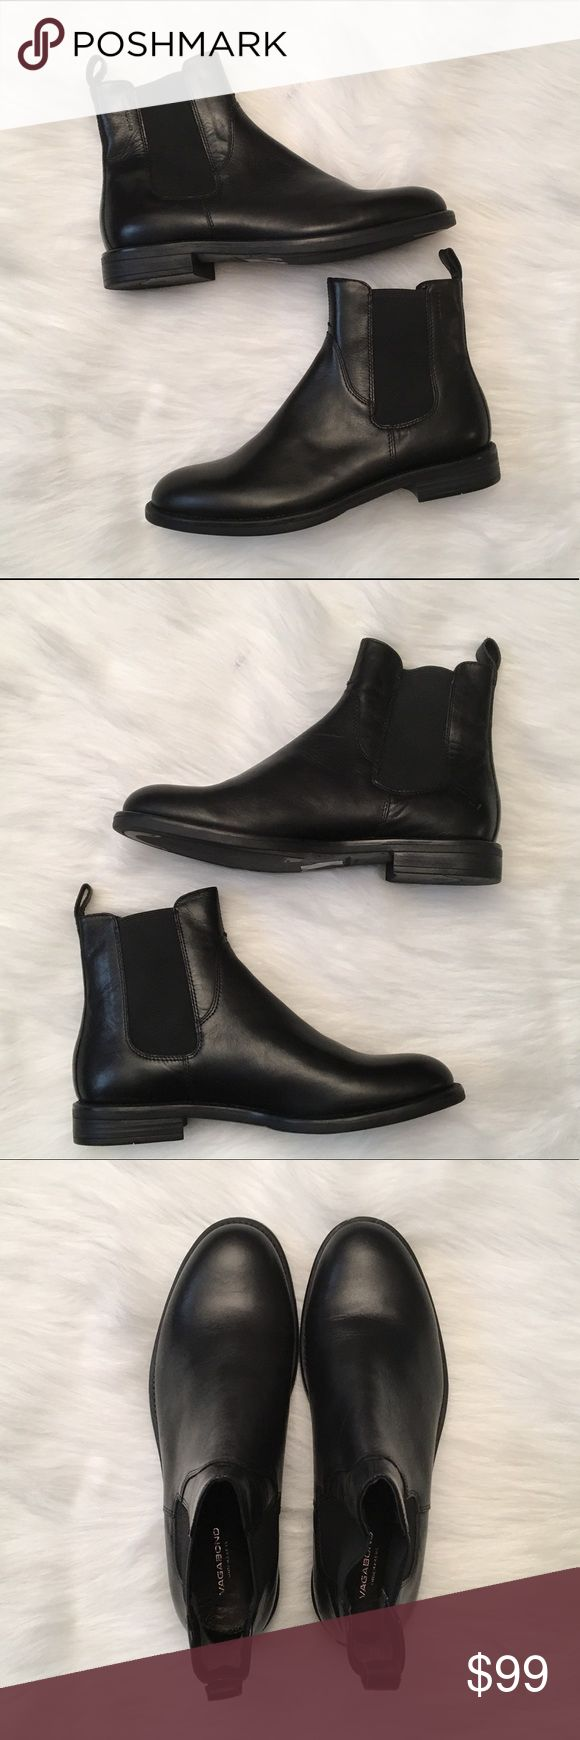 Vagabond Amina Ankle Chelsea Boot Size 39 US 8.5 Vagabond Amina Low Ankle Chelsea Boots. Size 39 (US Women's 8-8.5) Style code: 4203-801-20. In excellent condition. Soft leather uppers. Minor scuffs. No original box. Thanks for viewing! Comes from a pet free/smoke free home :) Vagabond Shoes Ankle Boots & Booties